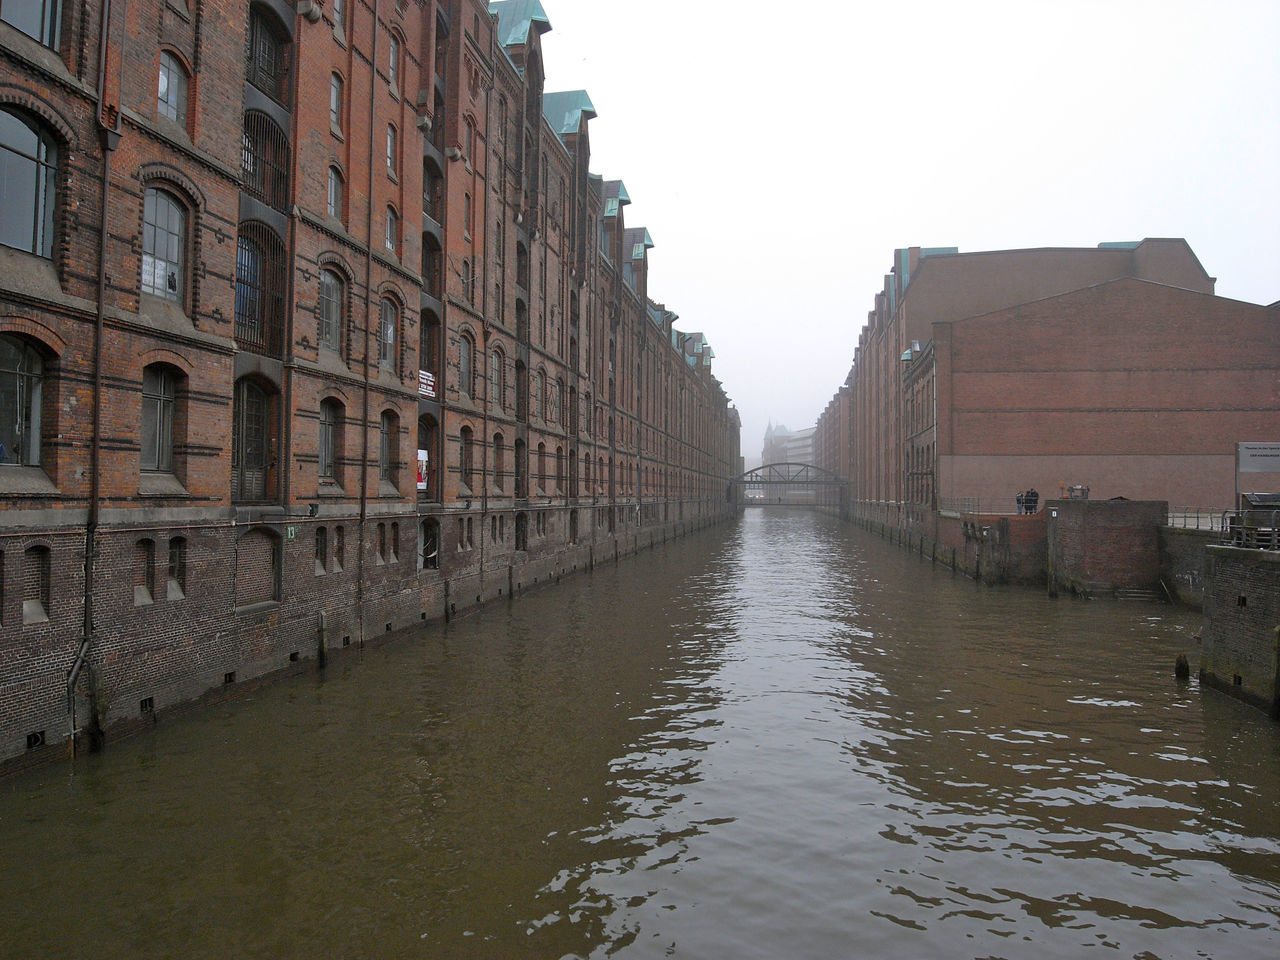 Old buildings on the bank of canal